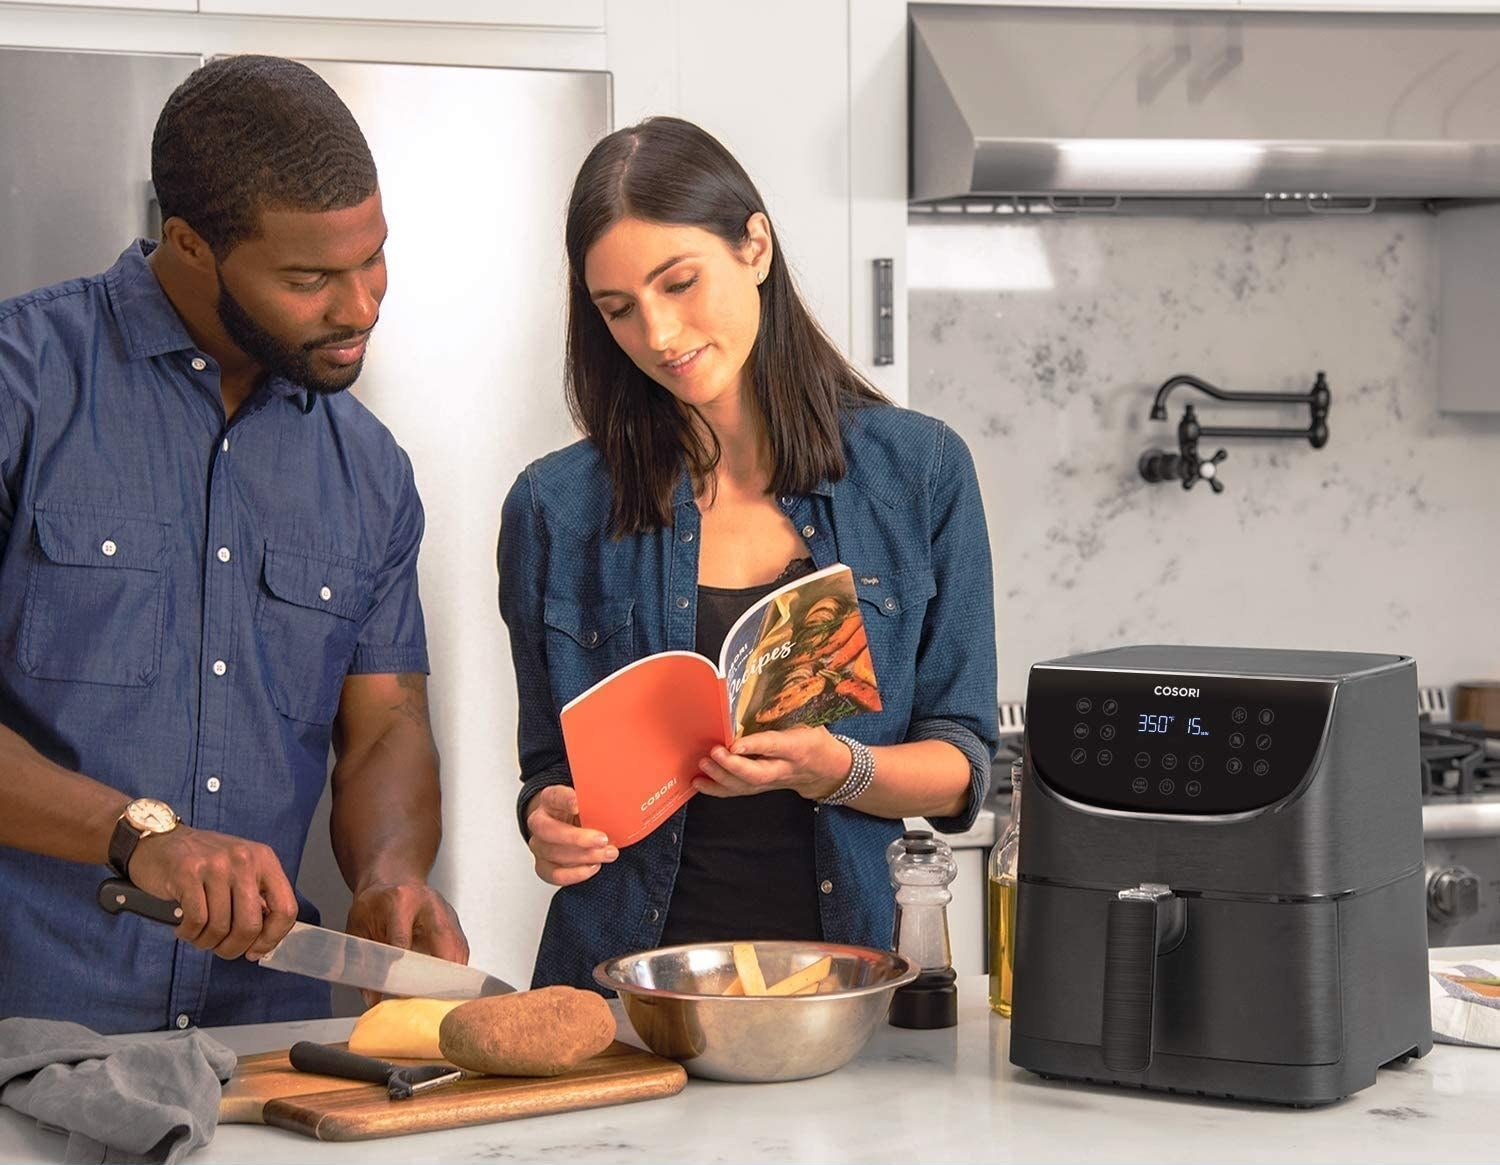 Two people cooking next to the air fryer